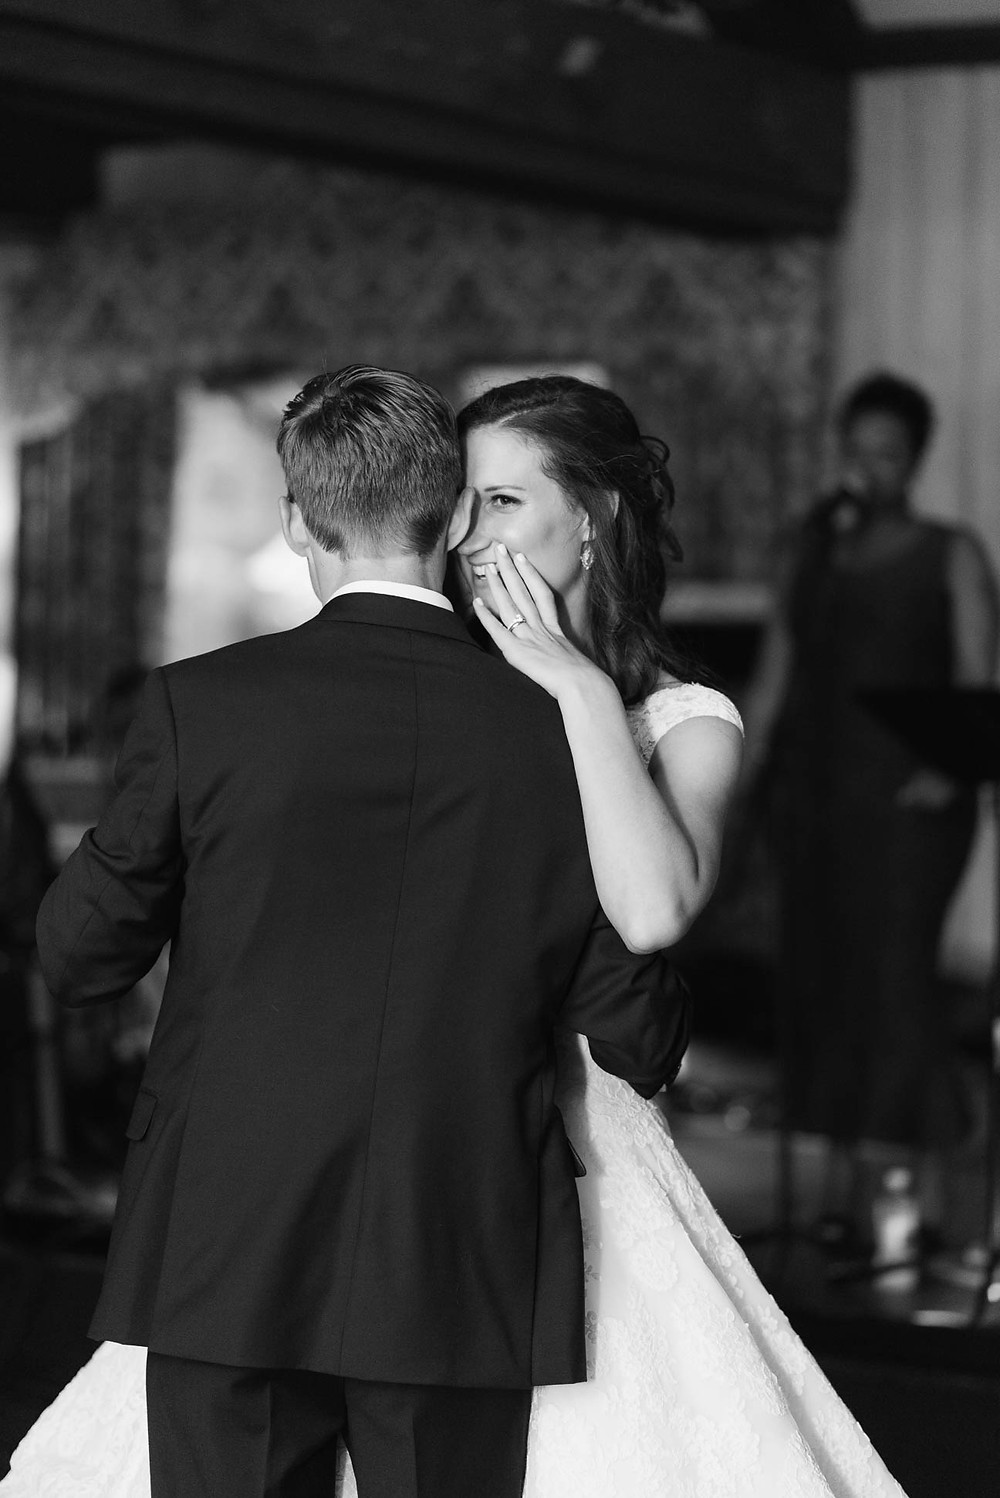 bride whispers into groom's ear during their first dance